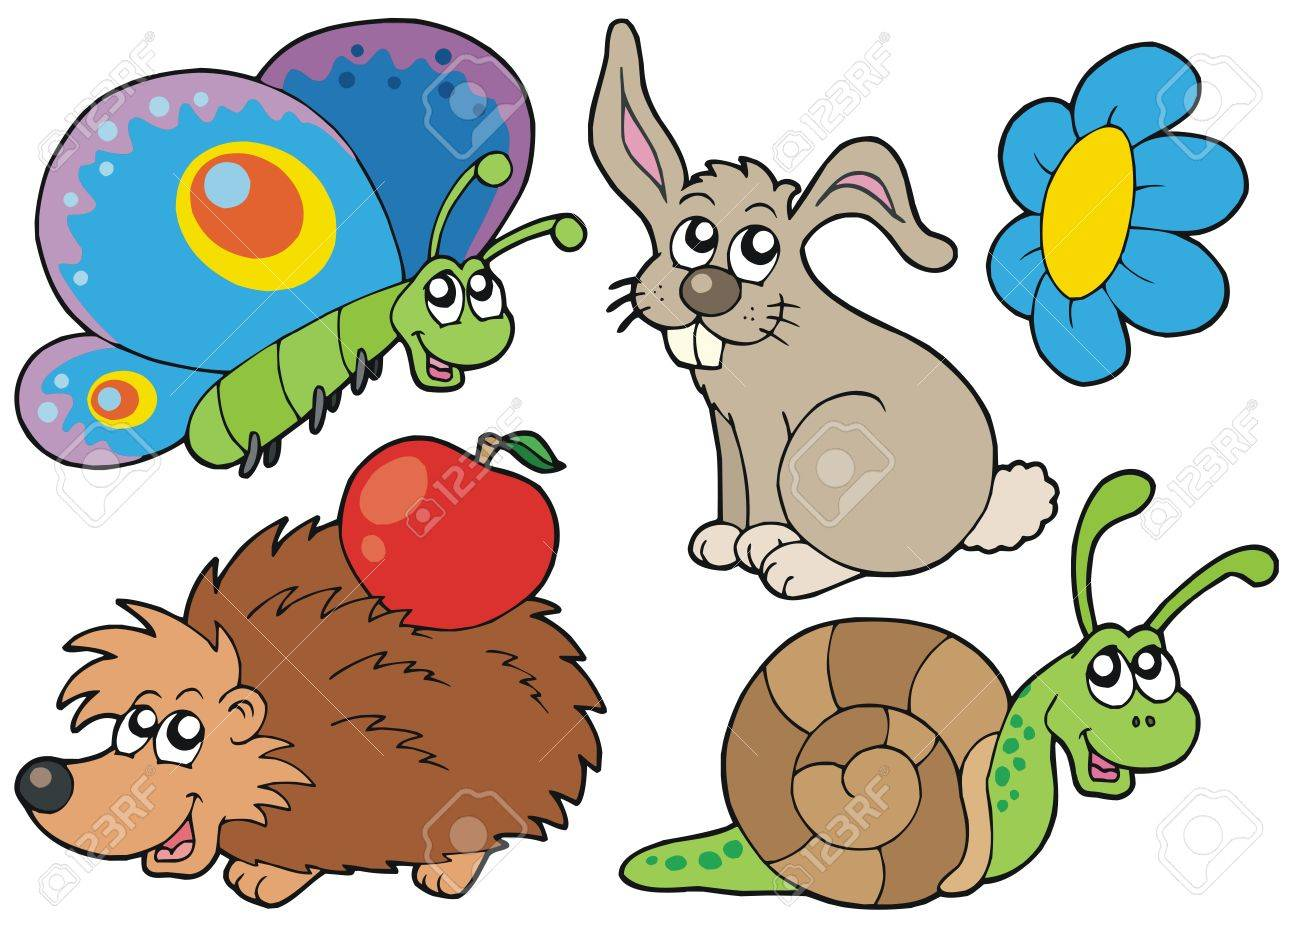 Small animals collection 7 - vector illustration. Stock Vector - 4700646